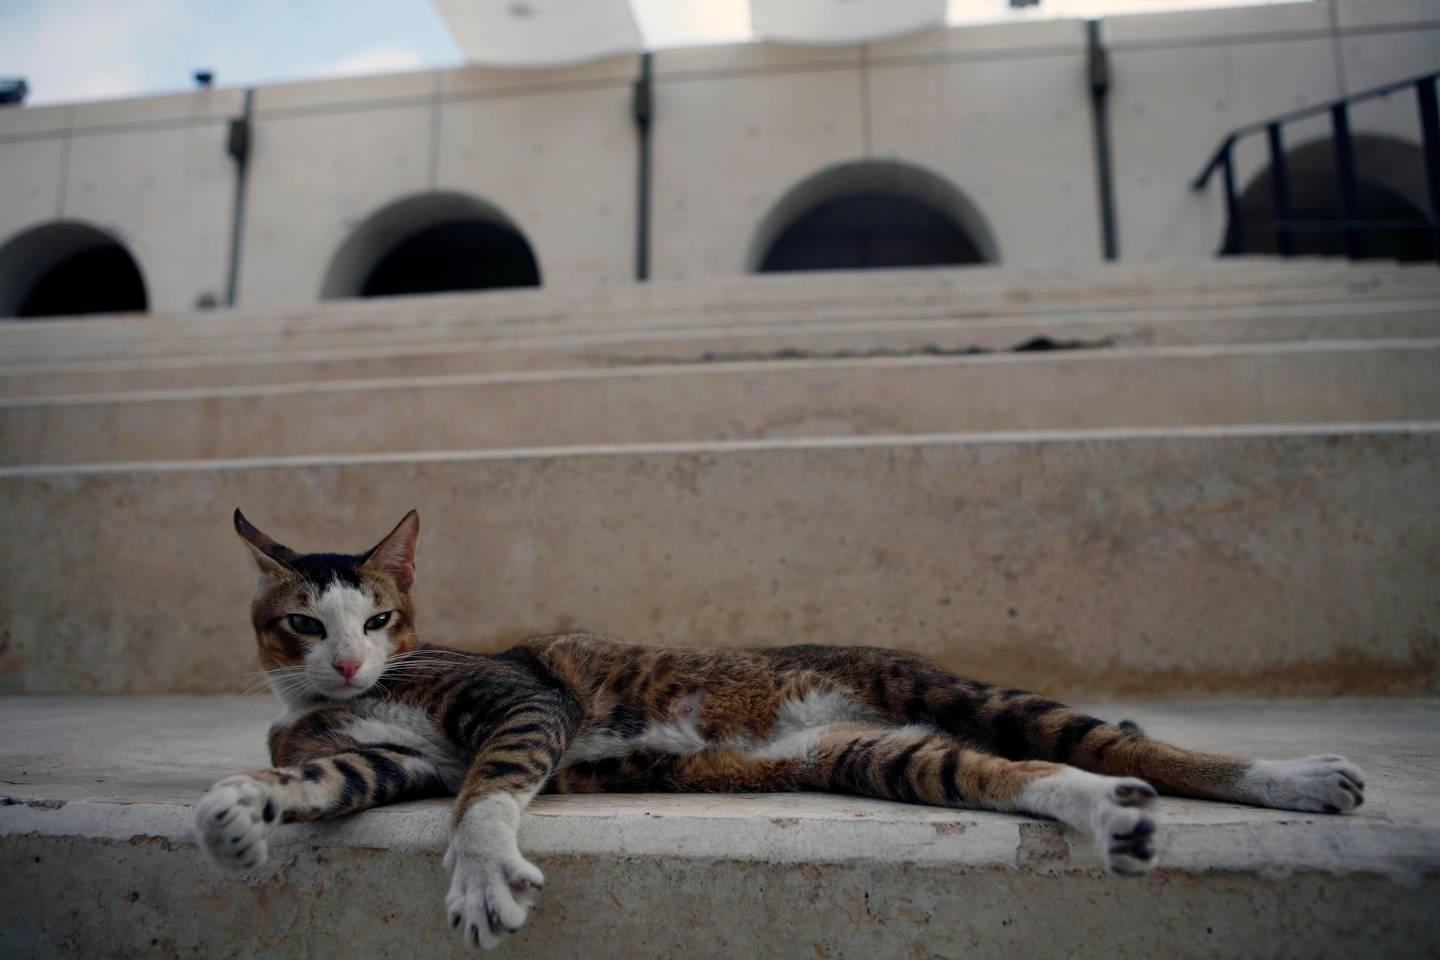 Abu Dhabi, UAE - December 24, 2008 - Stray cat at the Cultural Foundation. (Nicole Hill / The National)  ***FOR OASIS QUIZ PROJECT***  *** Local Caption ***  NH OasisQuiz13.jpgNH OasisQuiz13.jpg